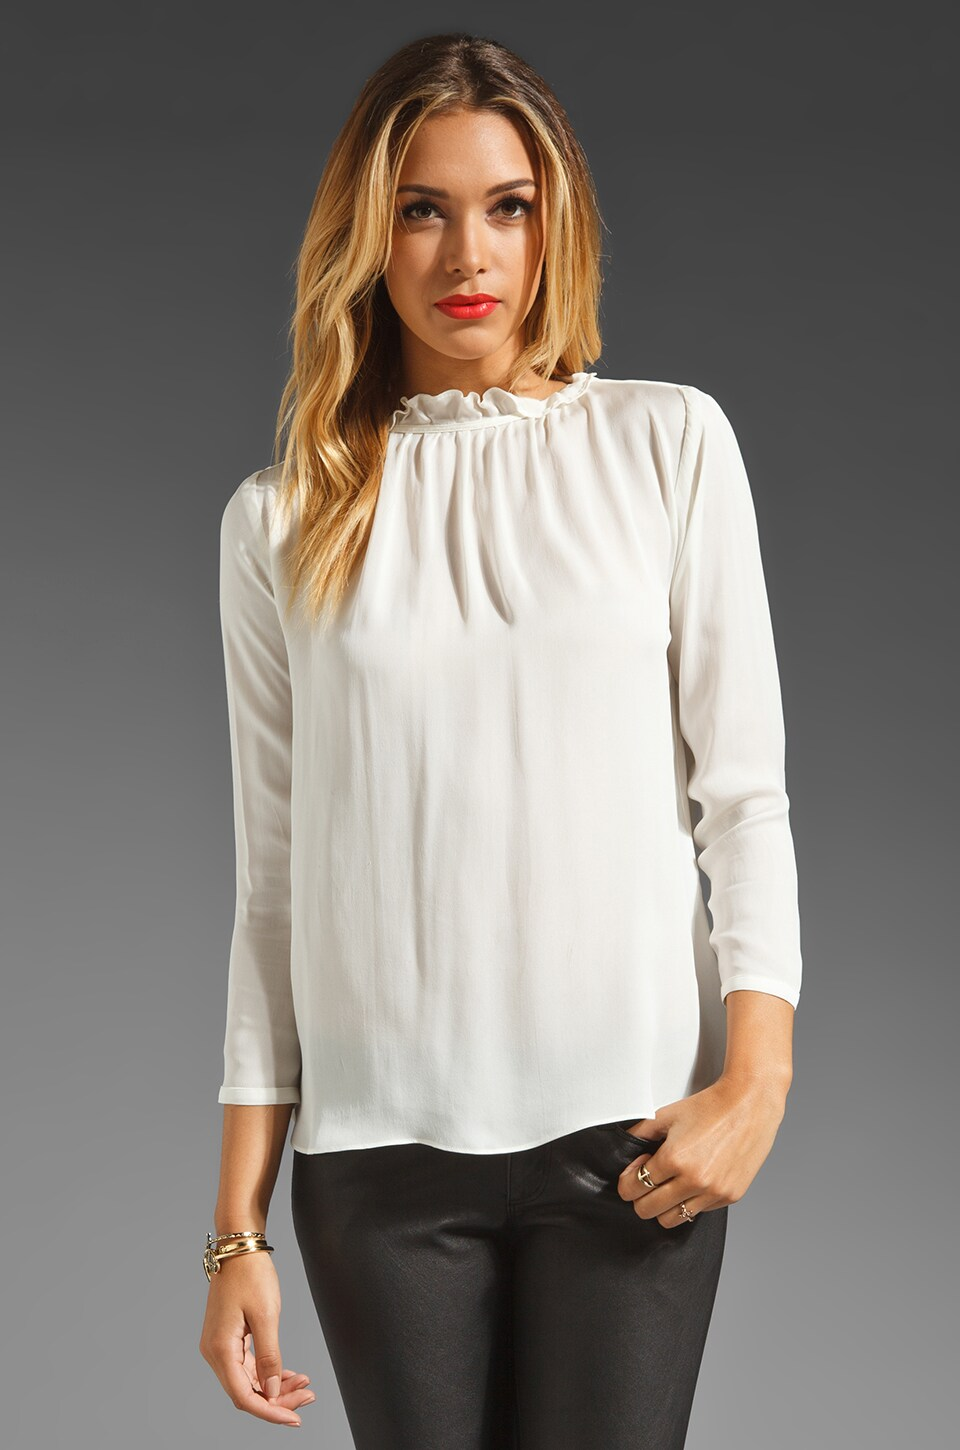 Graham & Spencer Vintage Georgette Top in Cream